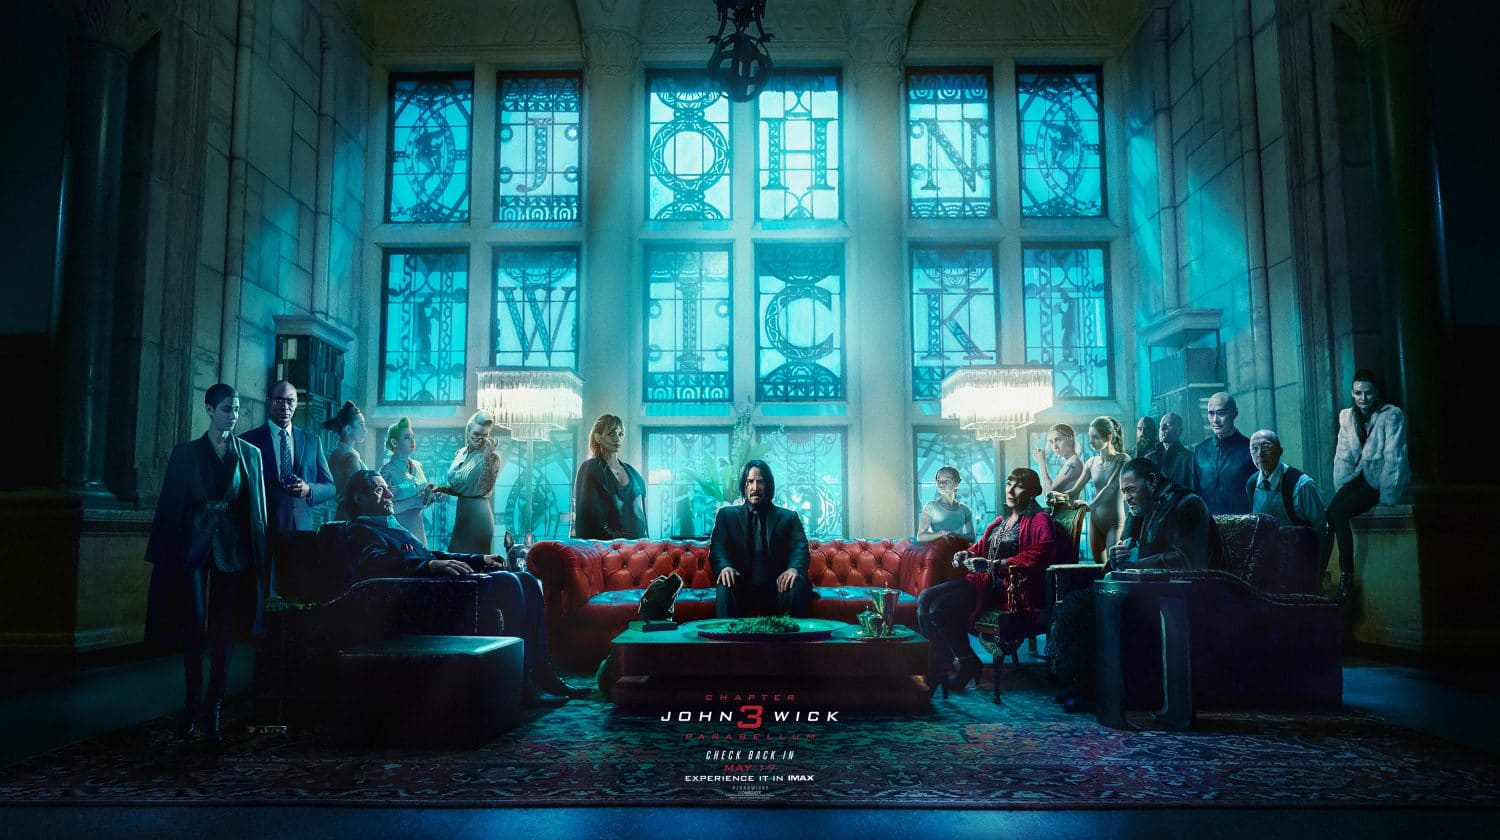 Check out this new Last Supper inspired John Wick poster, setting the stage for the new movie, John Wick Chapter 3: Parabellum.